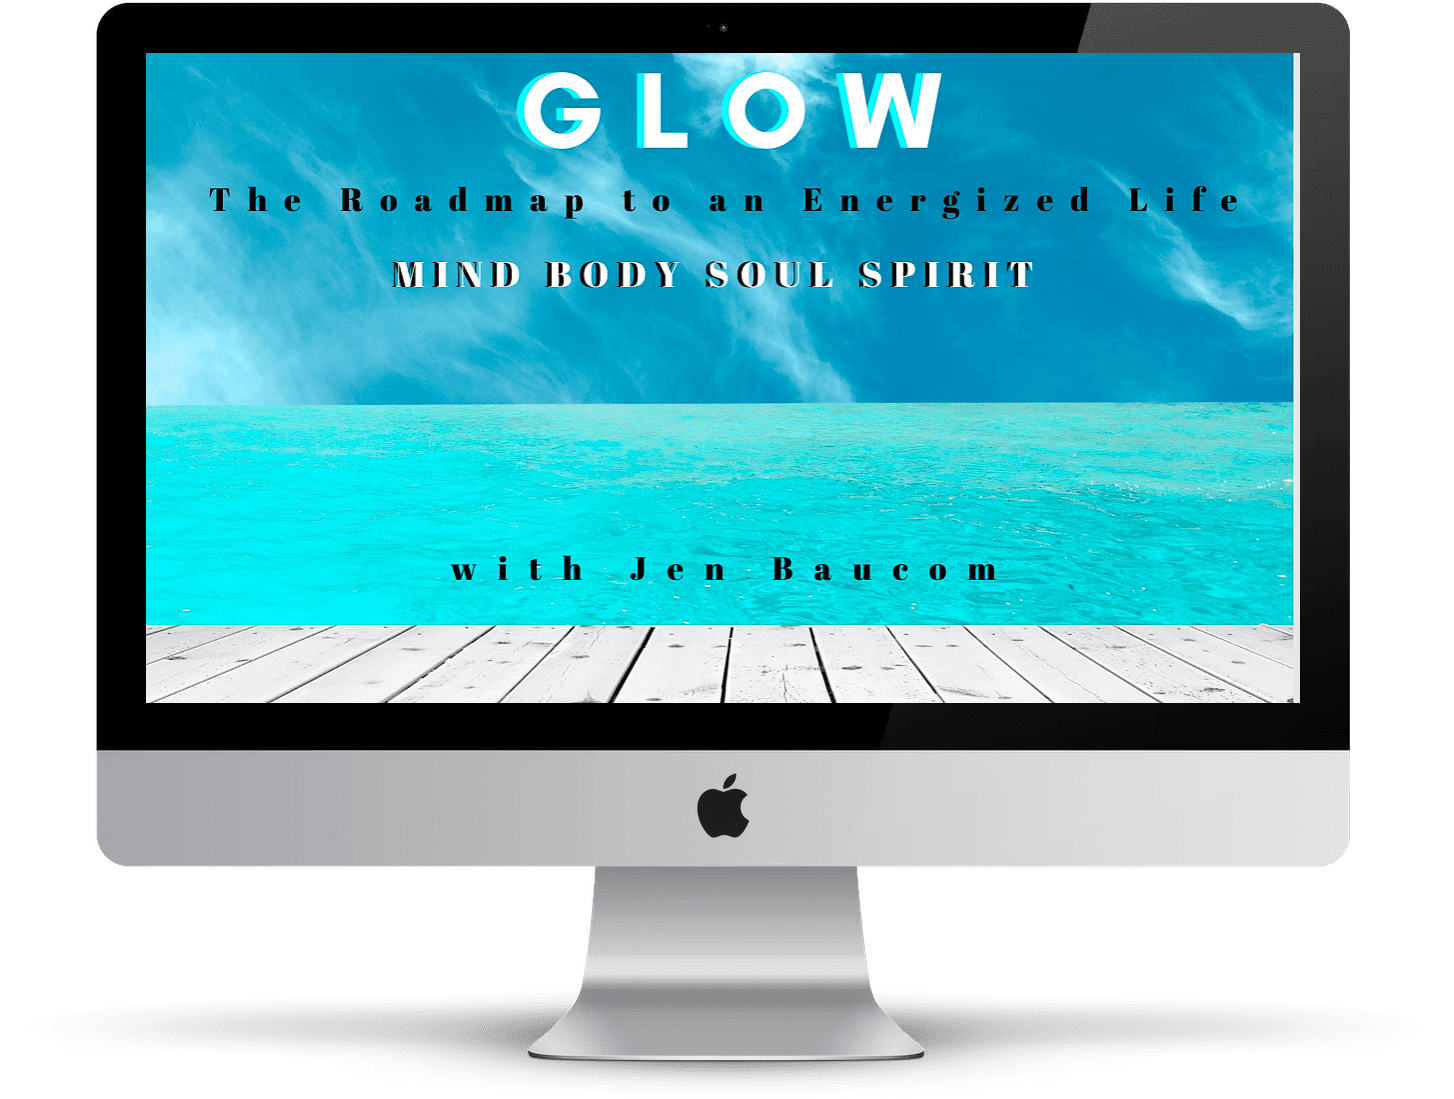 Glow is the roadmap to an energized life and heal yourself